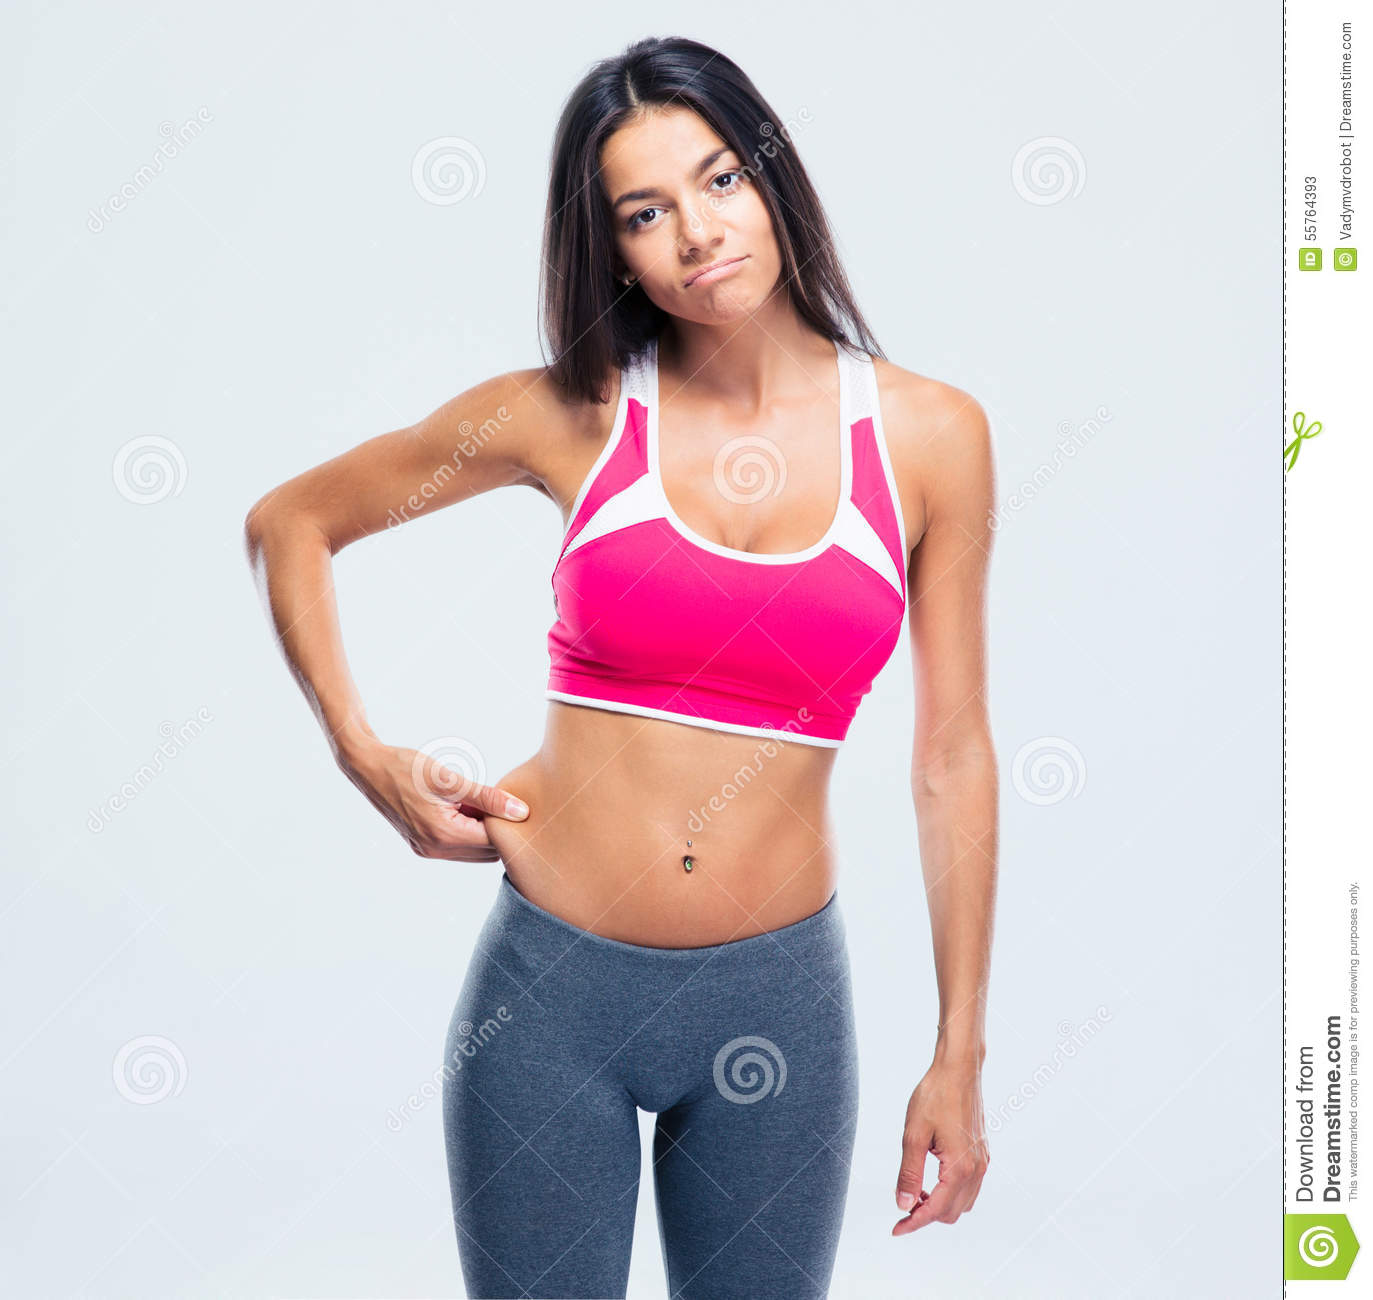 Fitness Woman Touching Her Belly Fat Stock Image Image Of